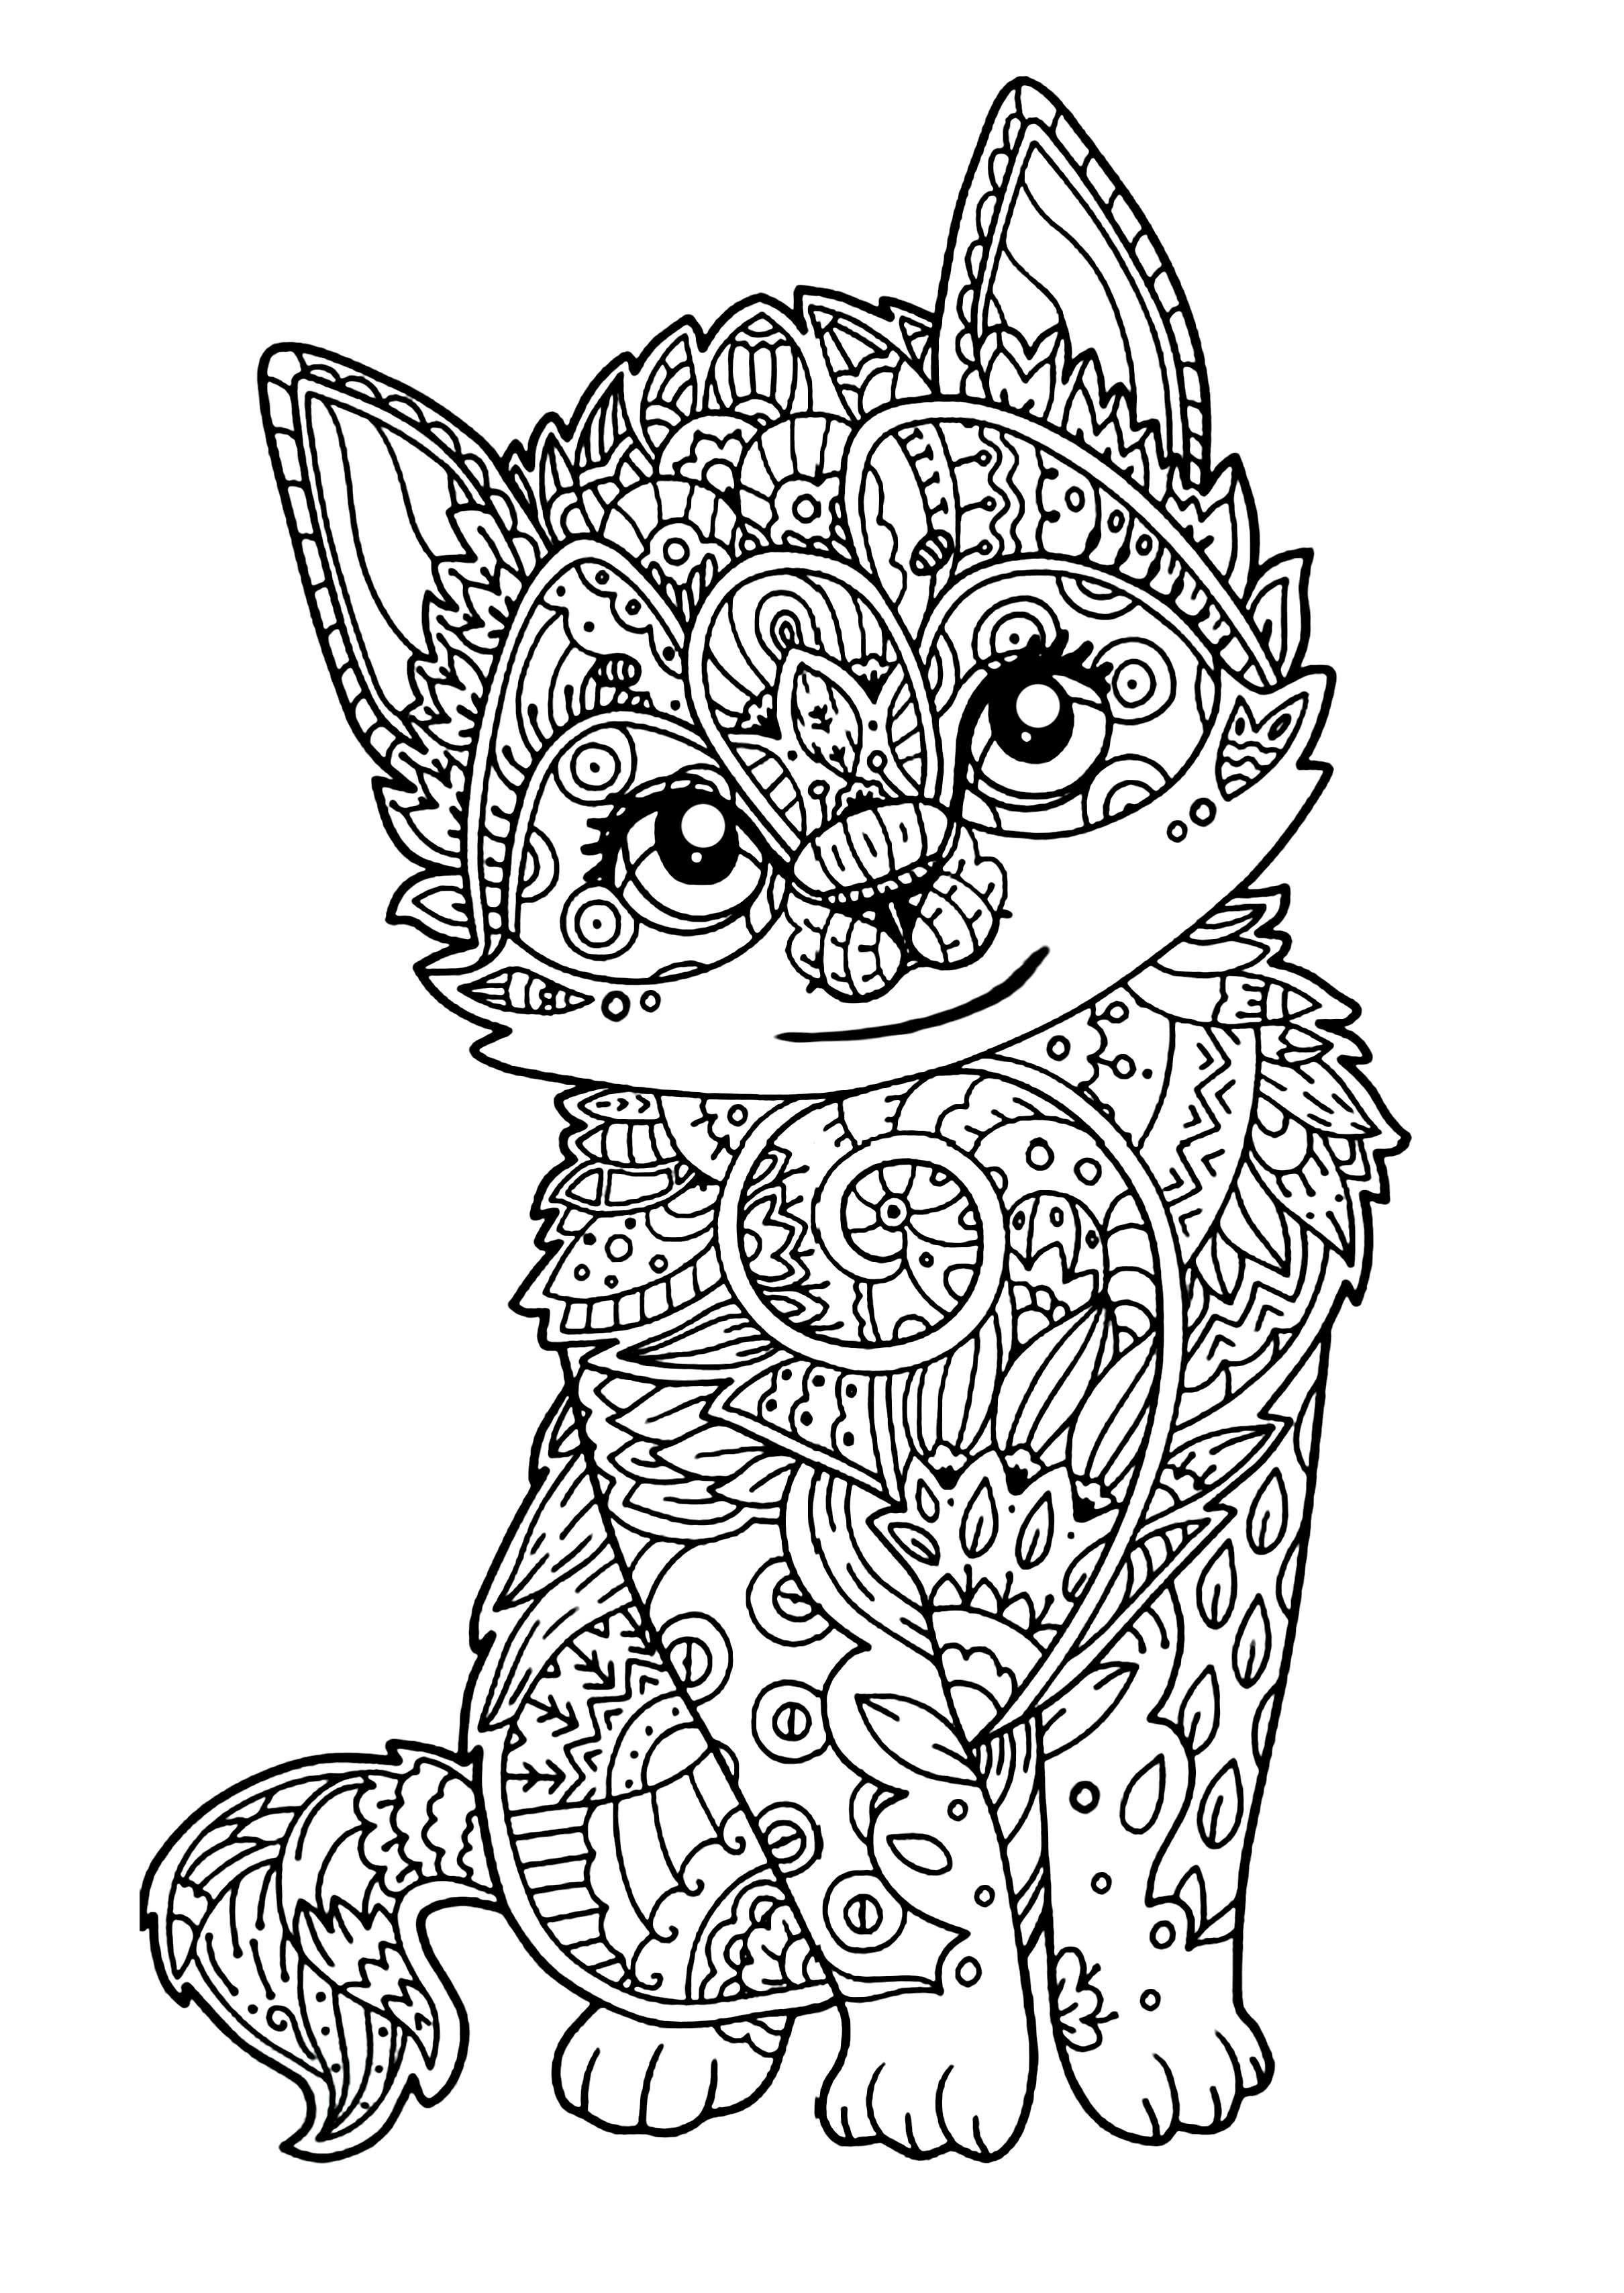 Coloring Mandala Cat Printllllll L Duilawyerlosangeles ...Detailed Mandala Coloring Pages For Adults